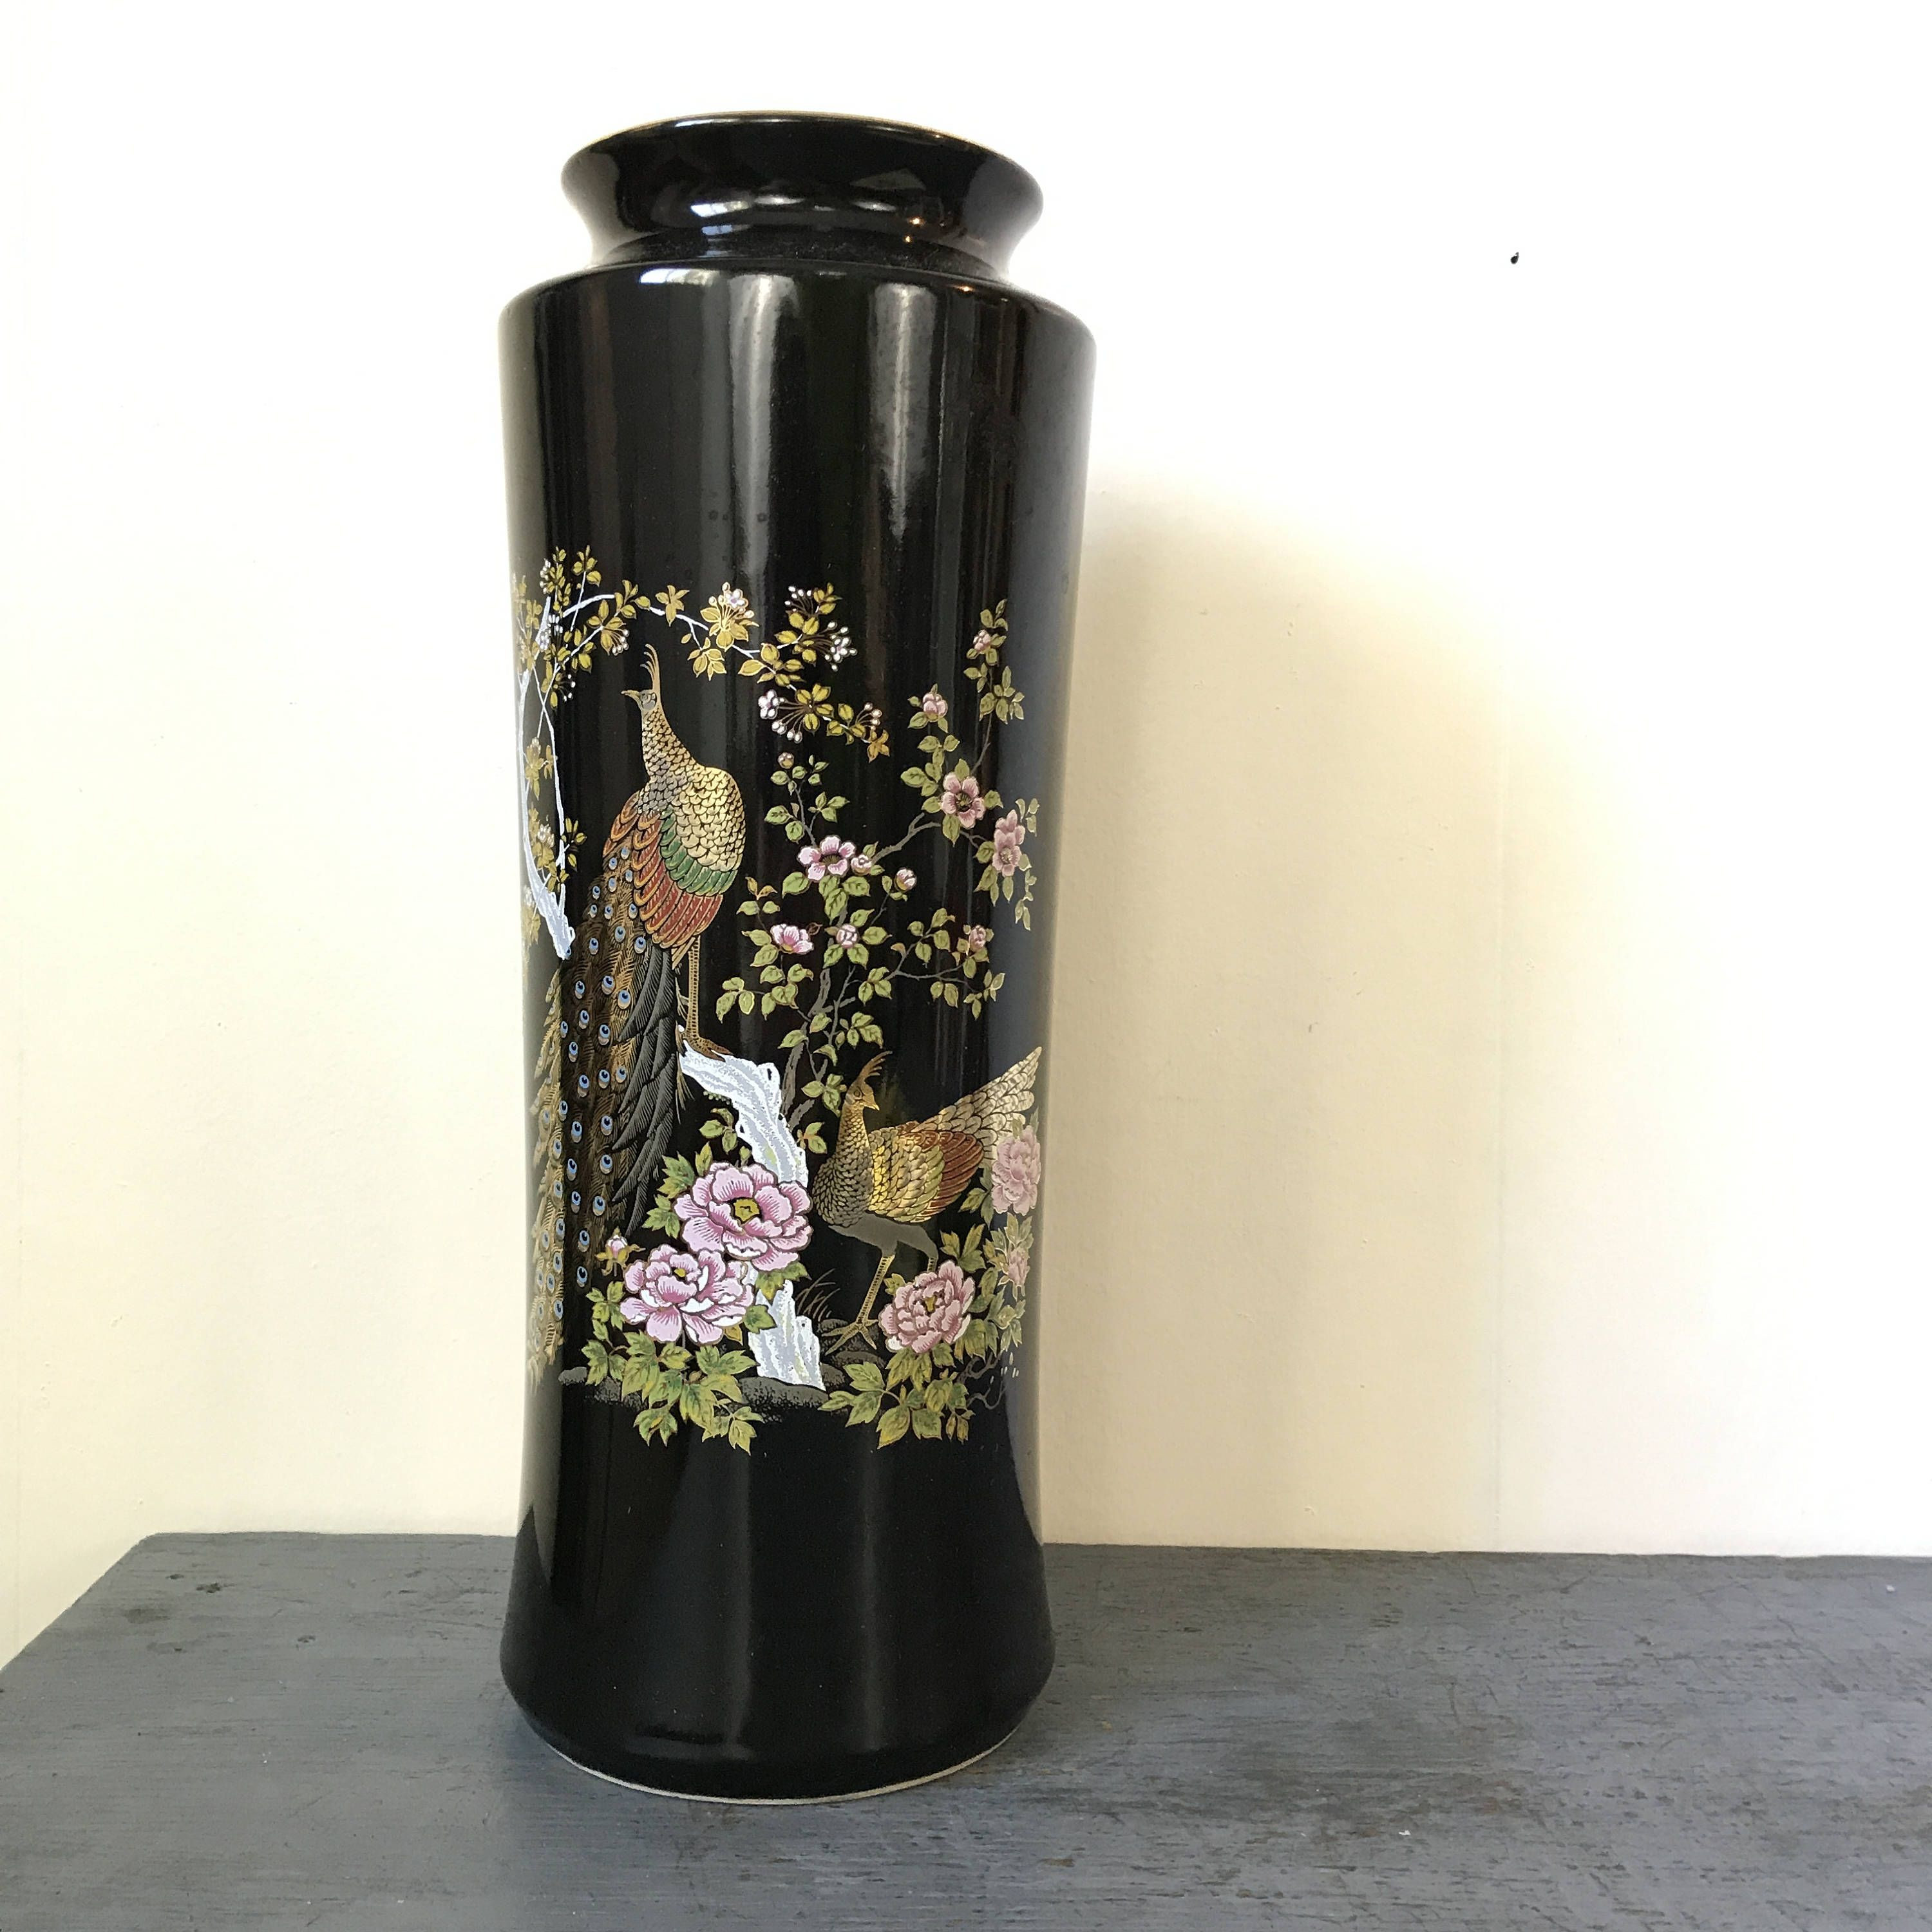 japanese vase with lid of black ceramic vase photograph vases white square vasei 0d plastic within black ceramic vase stock vintage ceramic vase japanese peacock floral asian chinoiserie of black ceramic vase